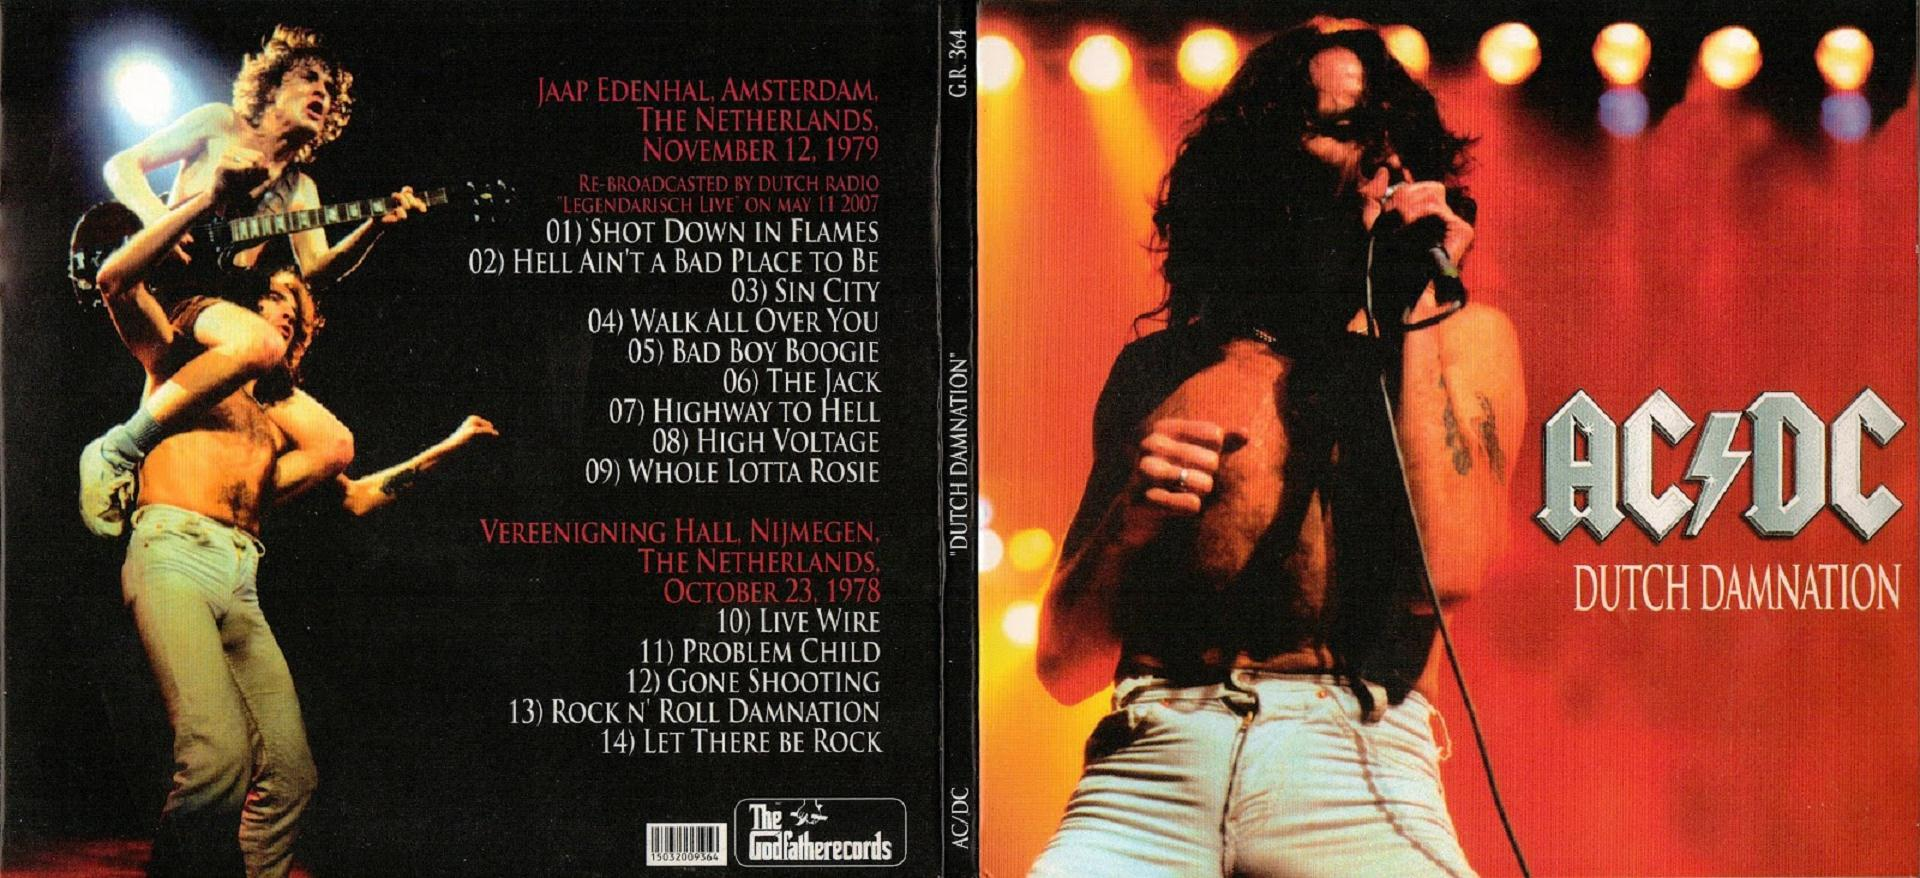 1978-10-23-Dutch_damnation-digipack